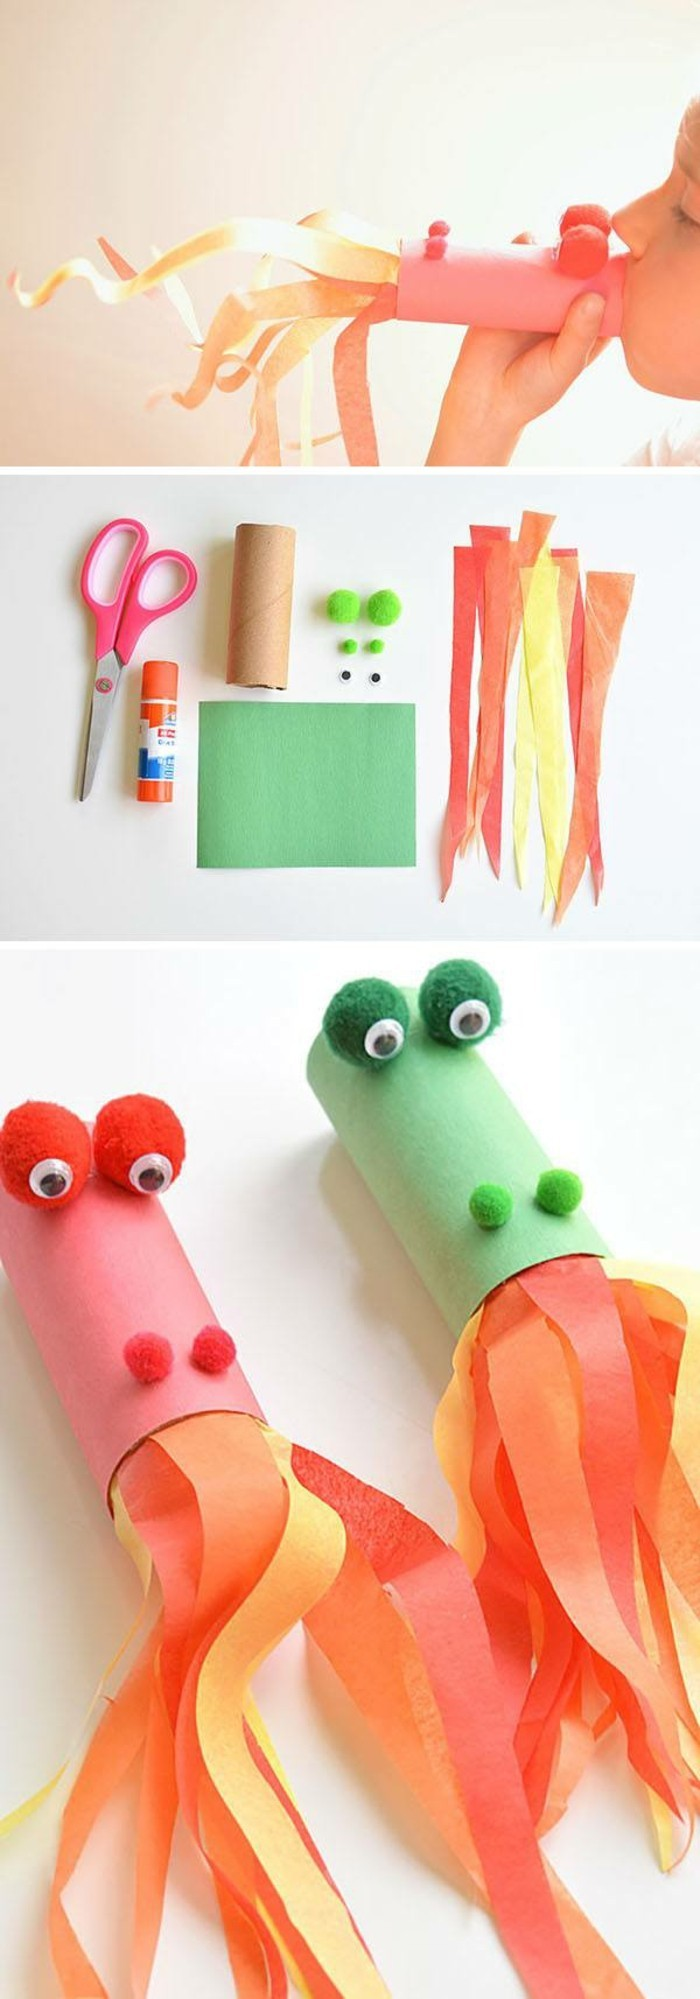 DIY Ideas Decorating ideas with children